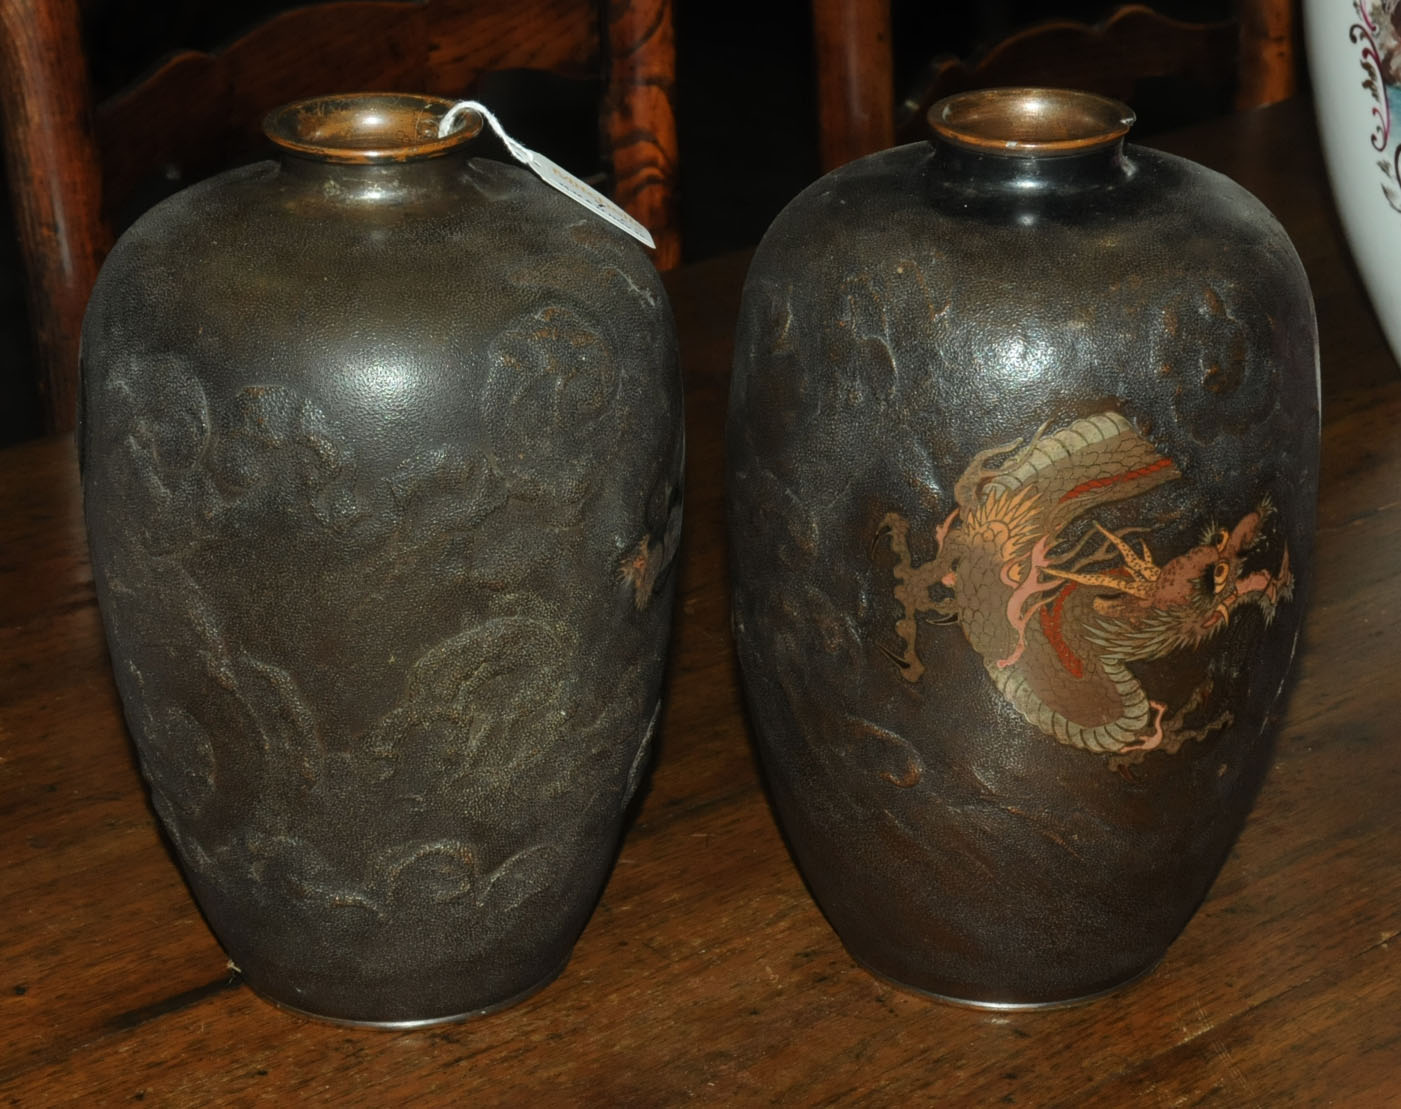 A pair of Japanese bronze vases, decorated with chasing dragons. Height 26 cm. - Image 5 of 11